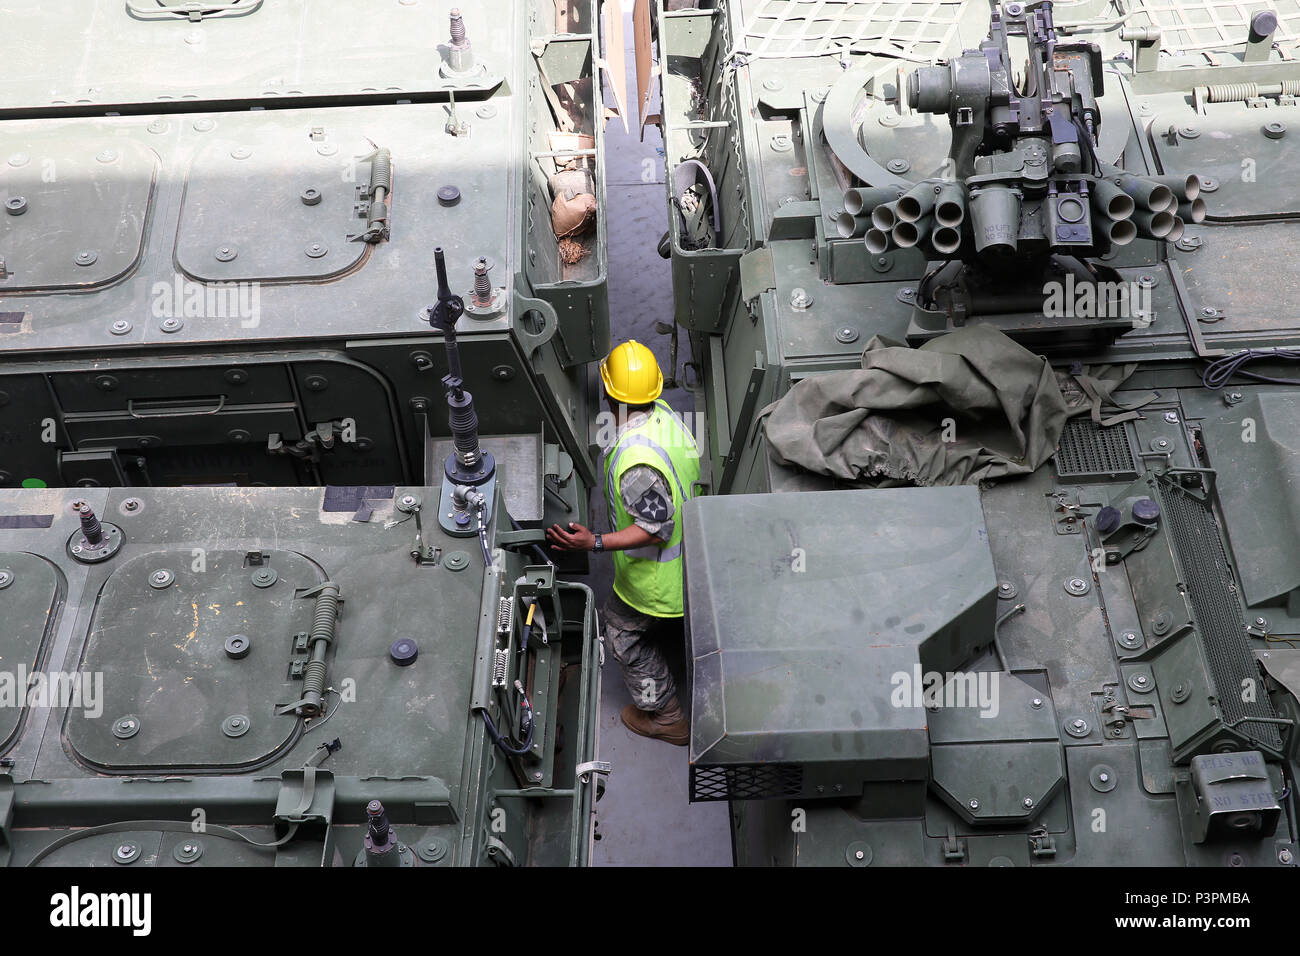 160712-N-IX266-011 SATTAHIP, Thailand—A soldier carefully guides in an M1126 Stryker in the cargo deck of general purpose, heavy lift ship MV OCEAN GLORY during a backload of equipment at Chuk Samet, here, from exercise Hanuman Guardian, July 12. Military Sealift Command's contracted voyage-charter MV OCEAN GLORY recently conducted a backload of about 250 items in Thailand as part of U.S. Army Pacific's mobility operation PACIFIC PATHWAYS 16-2. (U.S. Navy photo by Grady T. Fontana/Released) - Stock Image